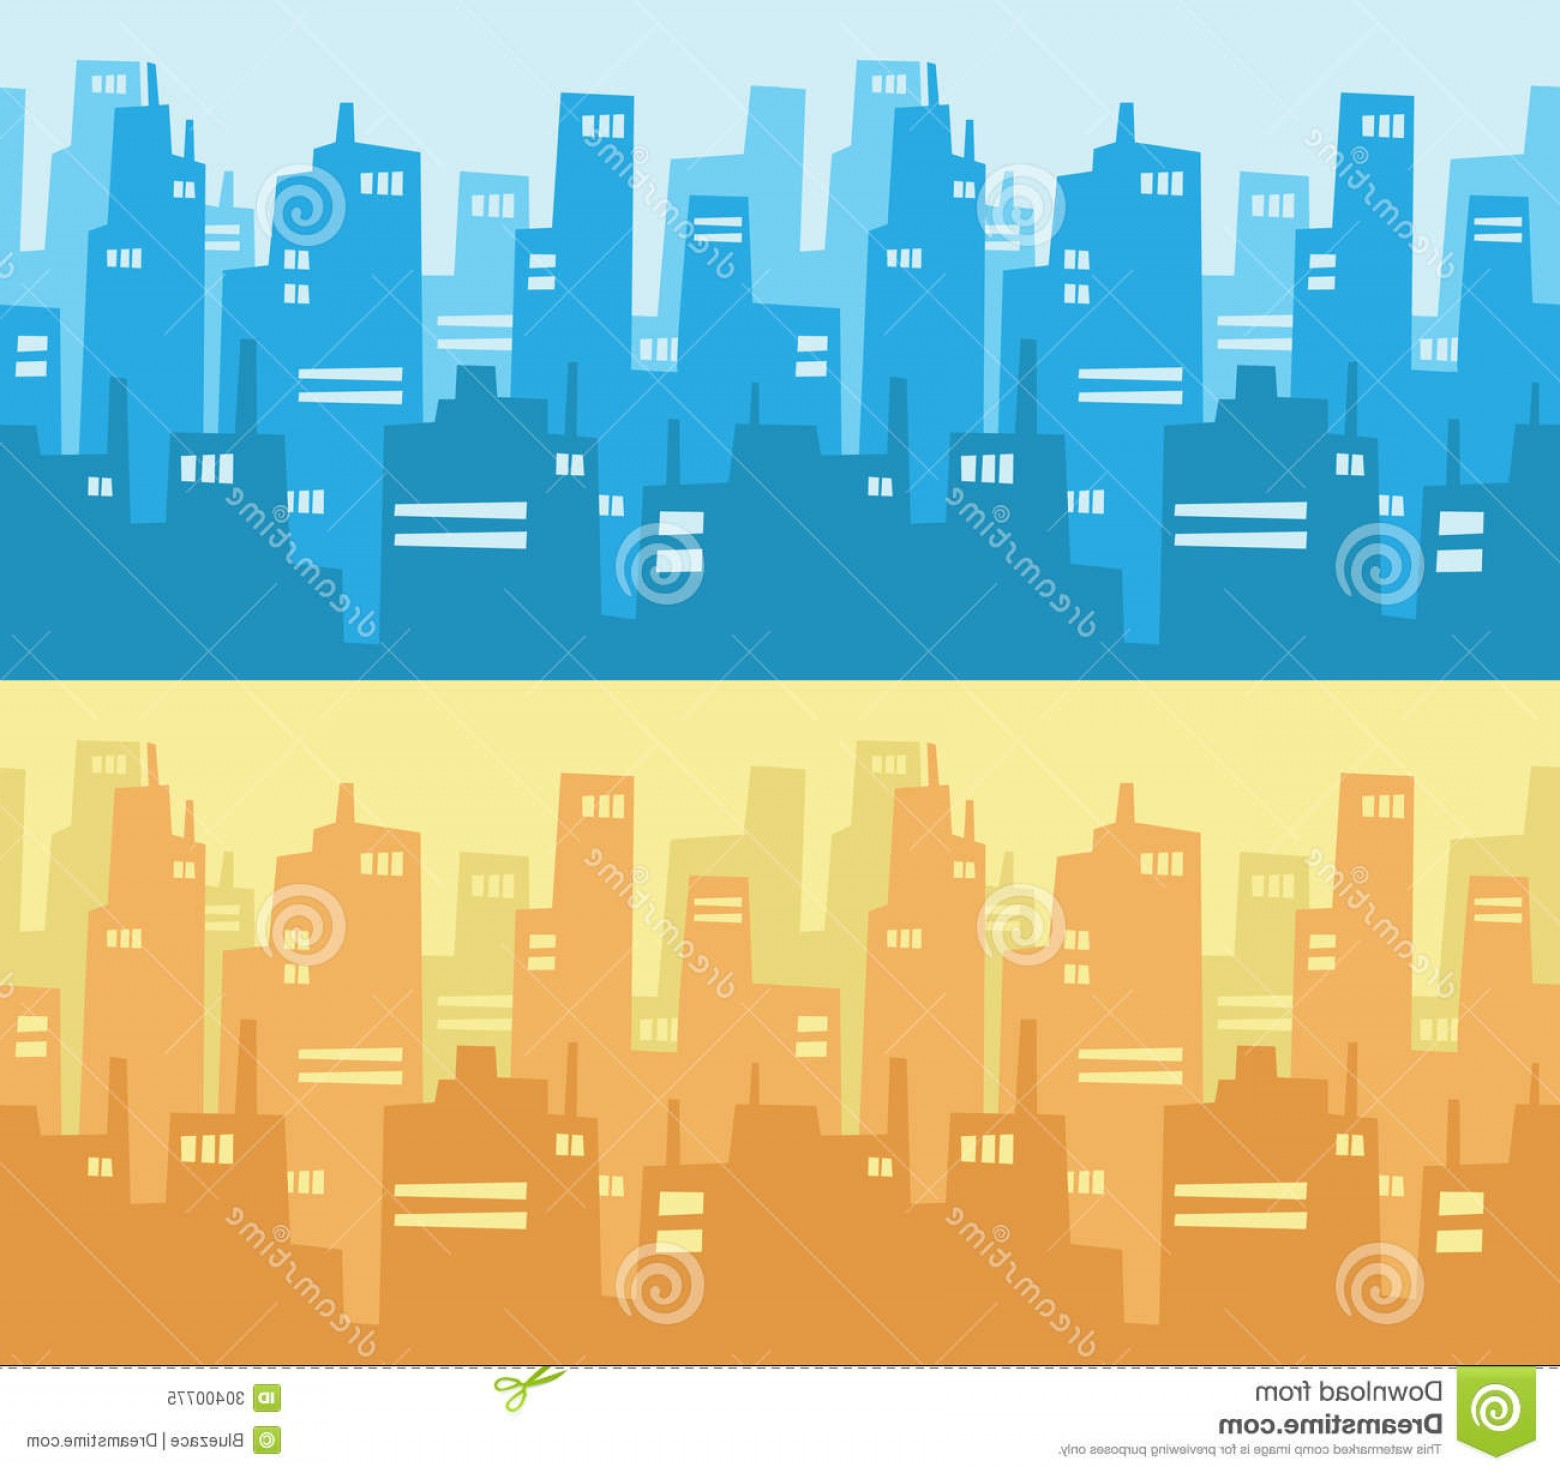 City Building Vector Free Download: Royalty Free Stock Photo City Skyscraper Silhouette Background Vector Set Building Vectors Very Good Design Element As Available Image